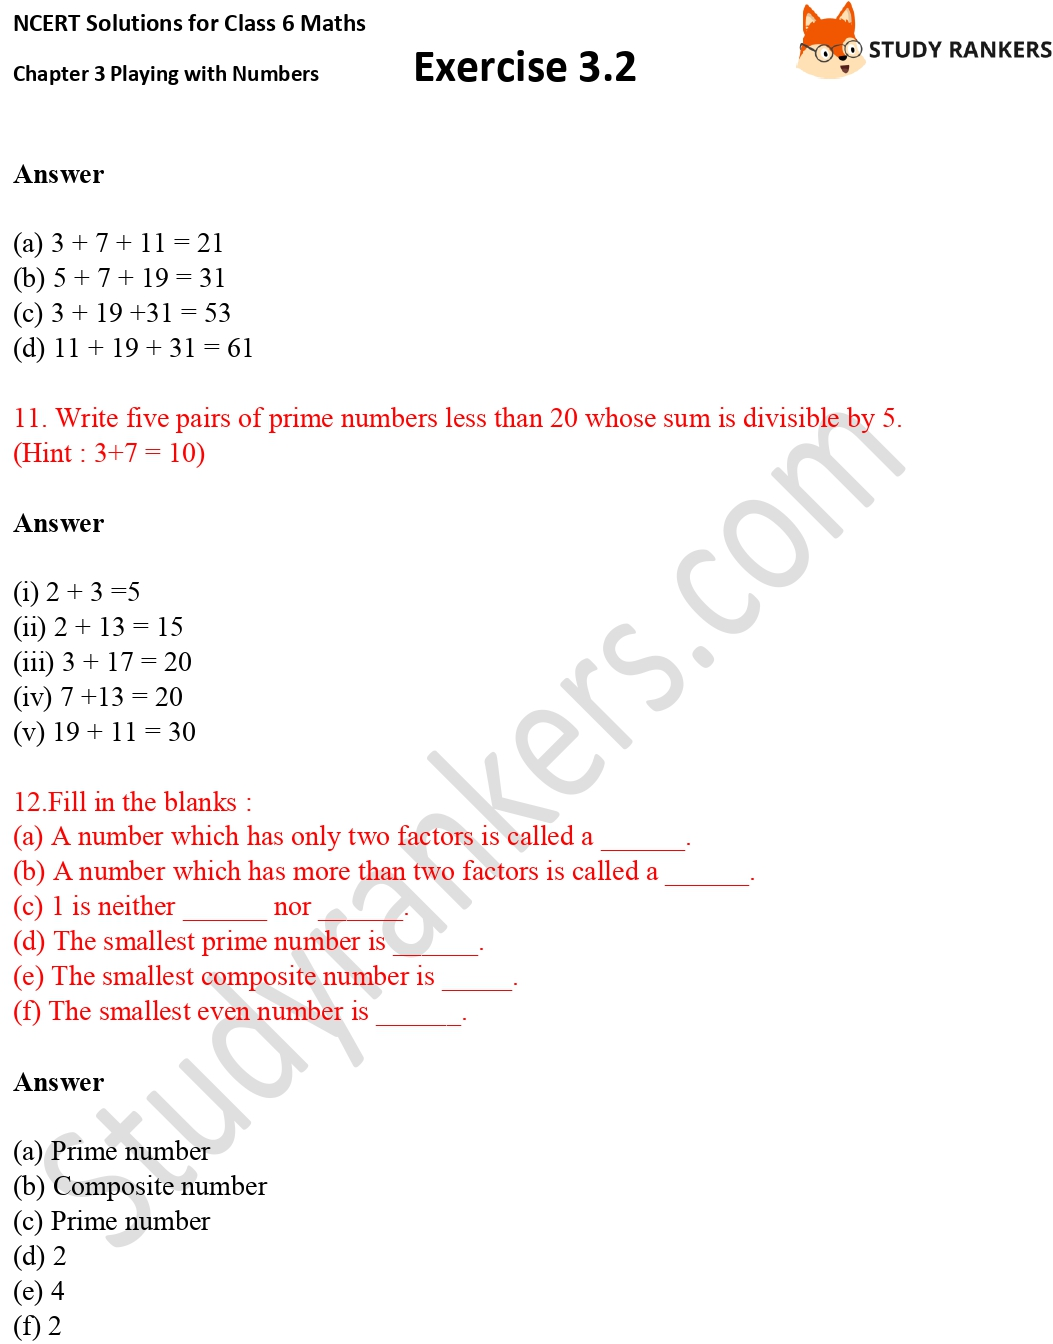 NCERT Solutions for Class 6 Maths Chapter 3 Playing with Numbers Exercise 3.2 Part 4